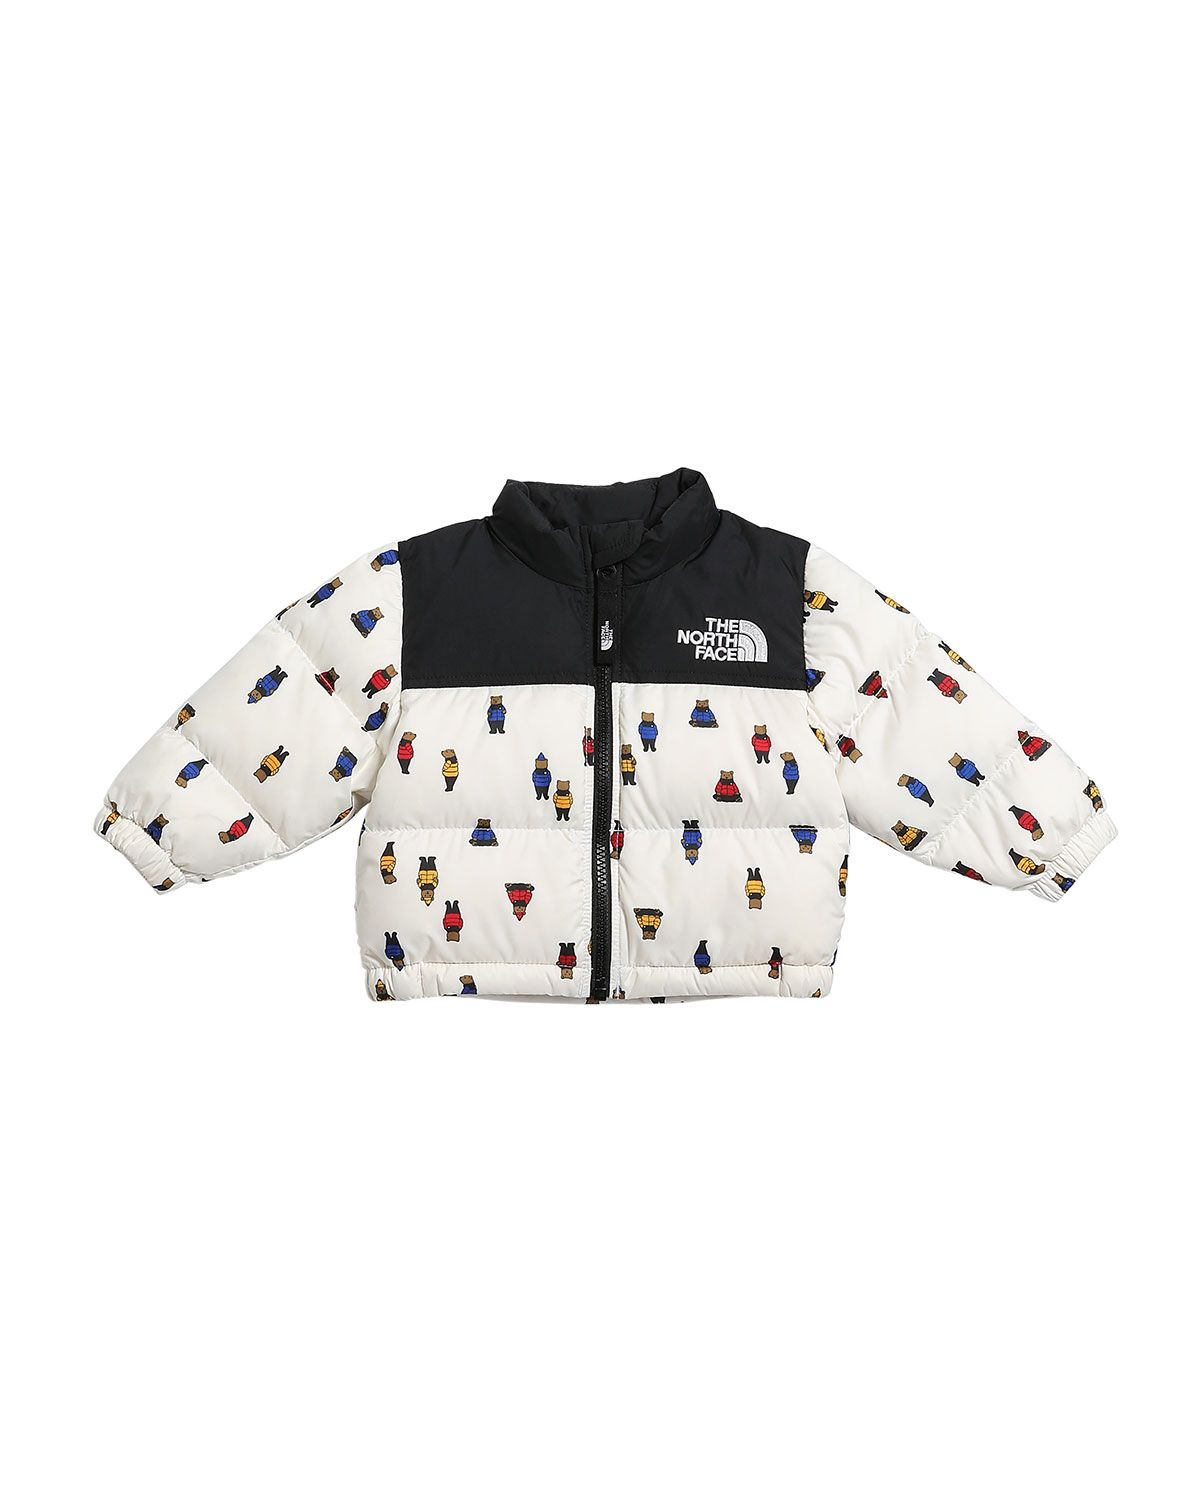 The North Face Infant 1996 Retro Nuptse Down Jacket Thenorthface Cloth North Face Kids Down Jacket The North Face [ 1500 x 1200 Pixel ]